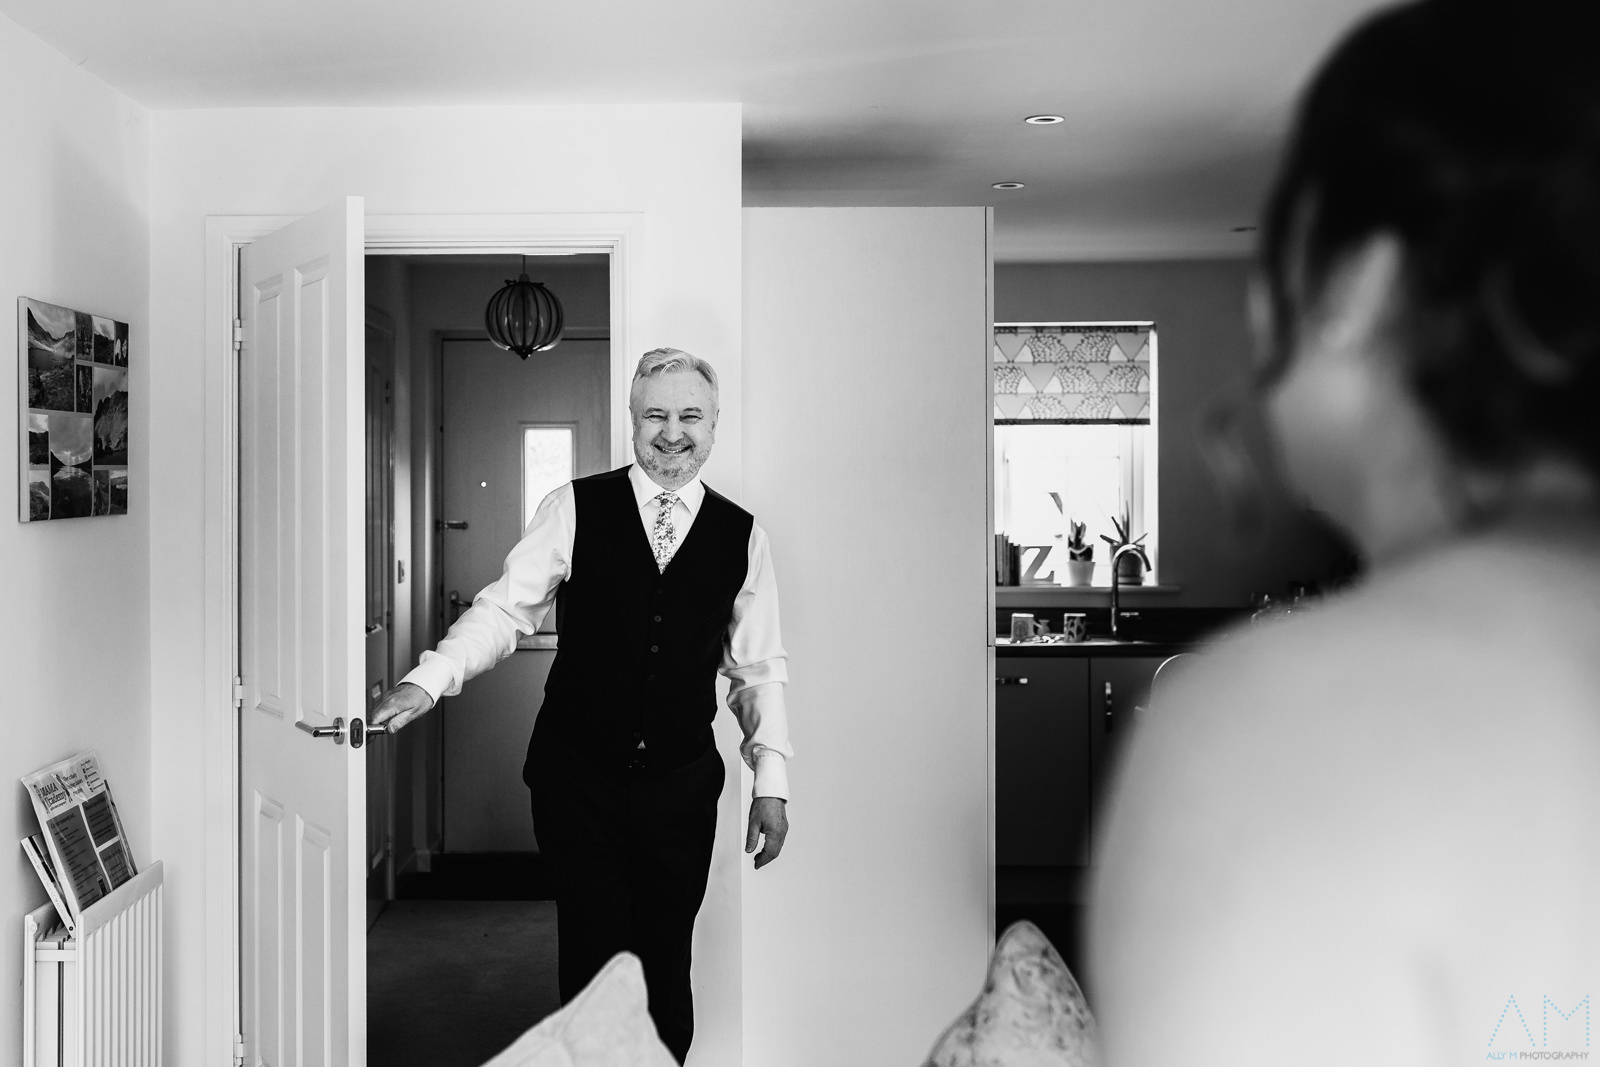 Father of the bride seeing his daugheter in her wedding dress for the first time.